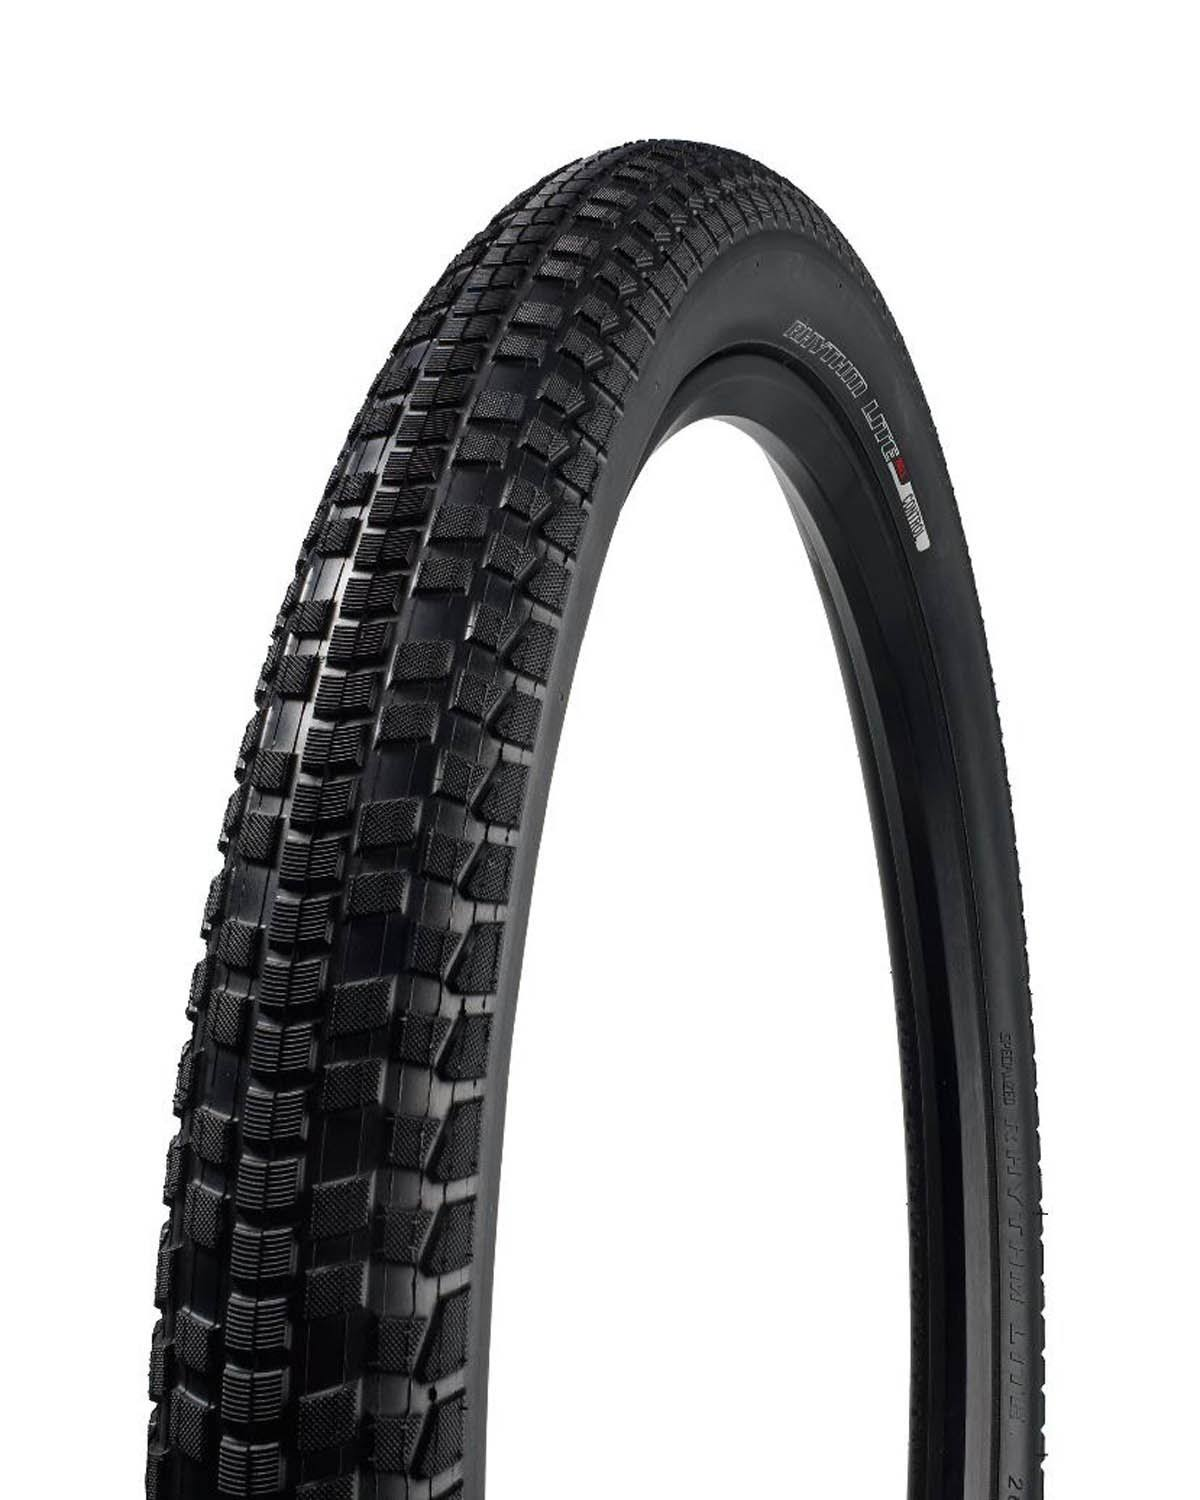 "Specialized Rhythm Lite 20 Zoll Clincher Tire - Black, 20"" x 2.3"""